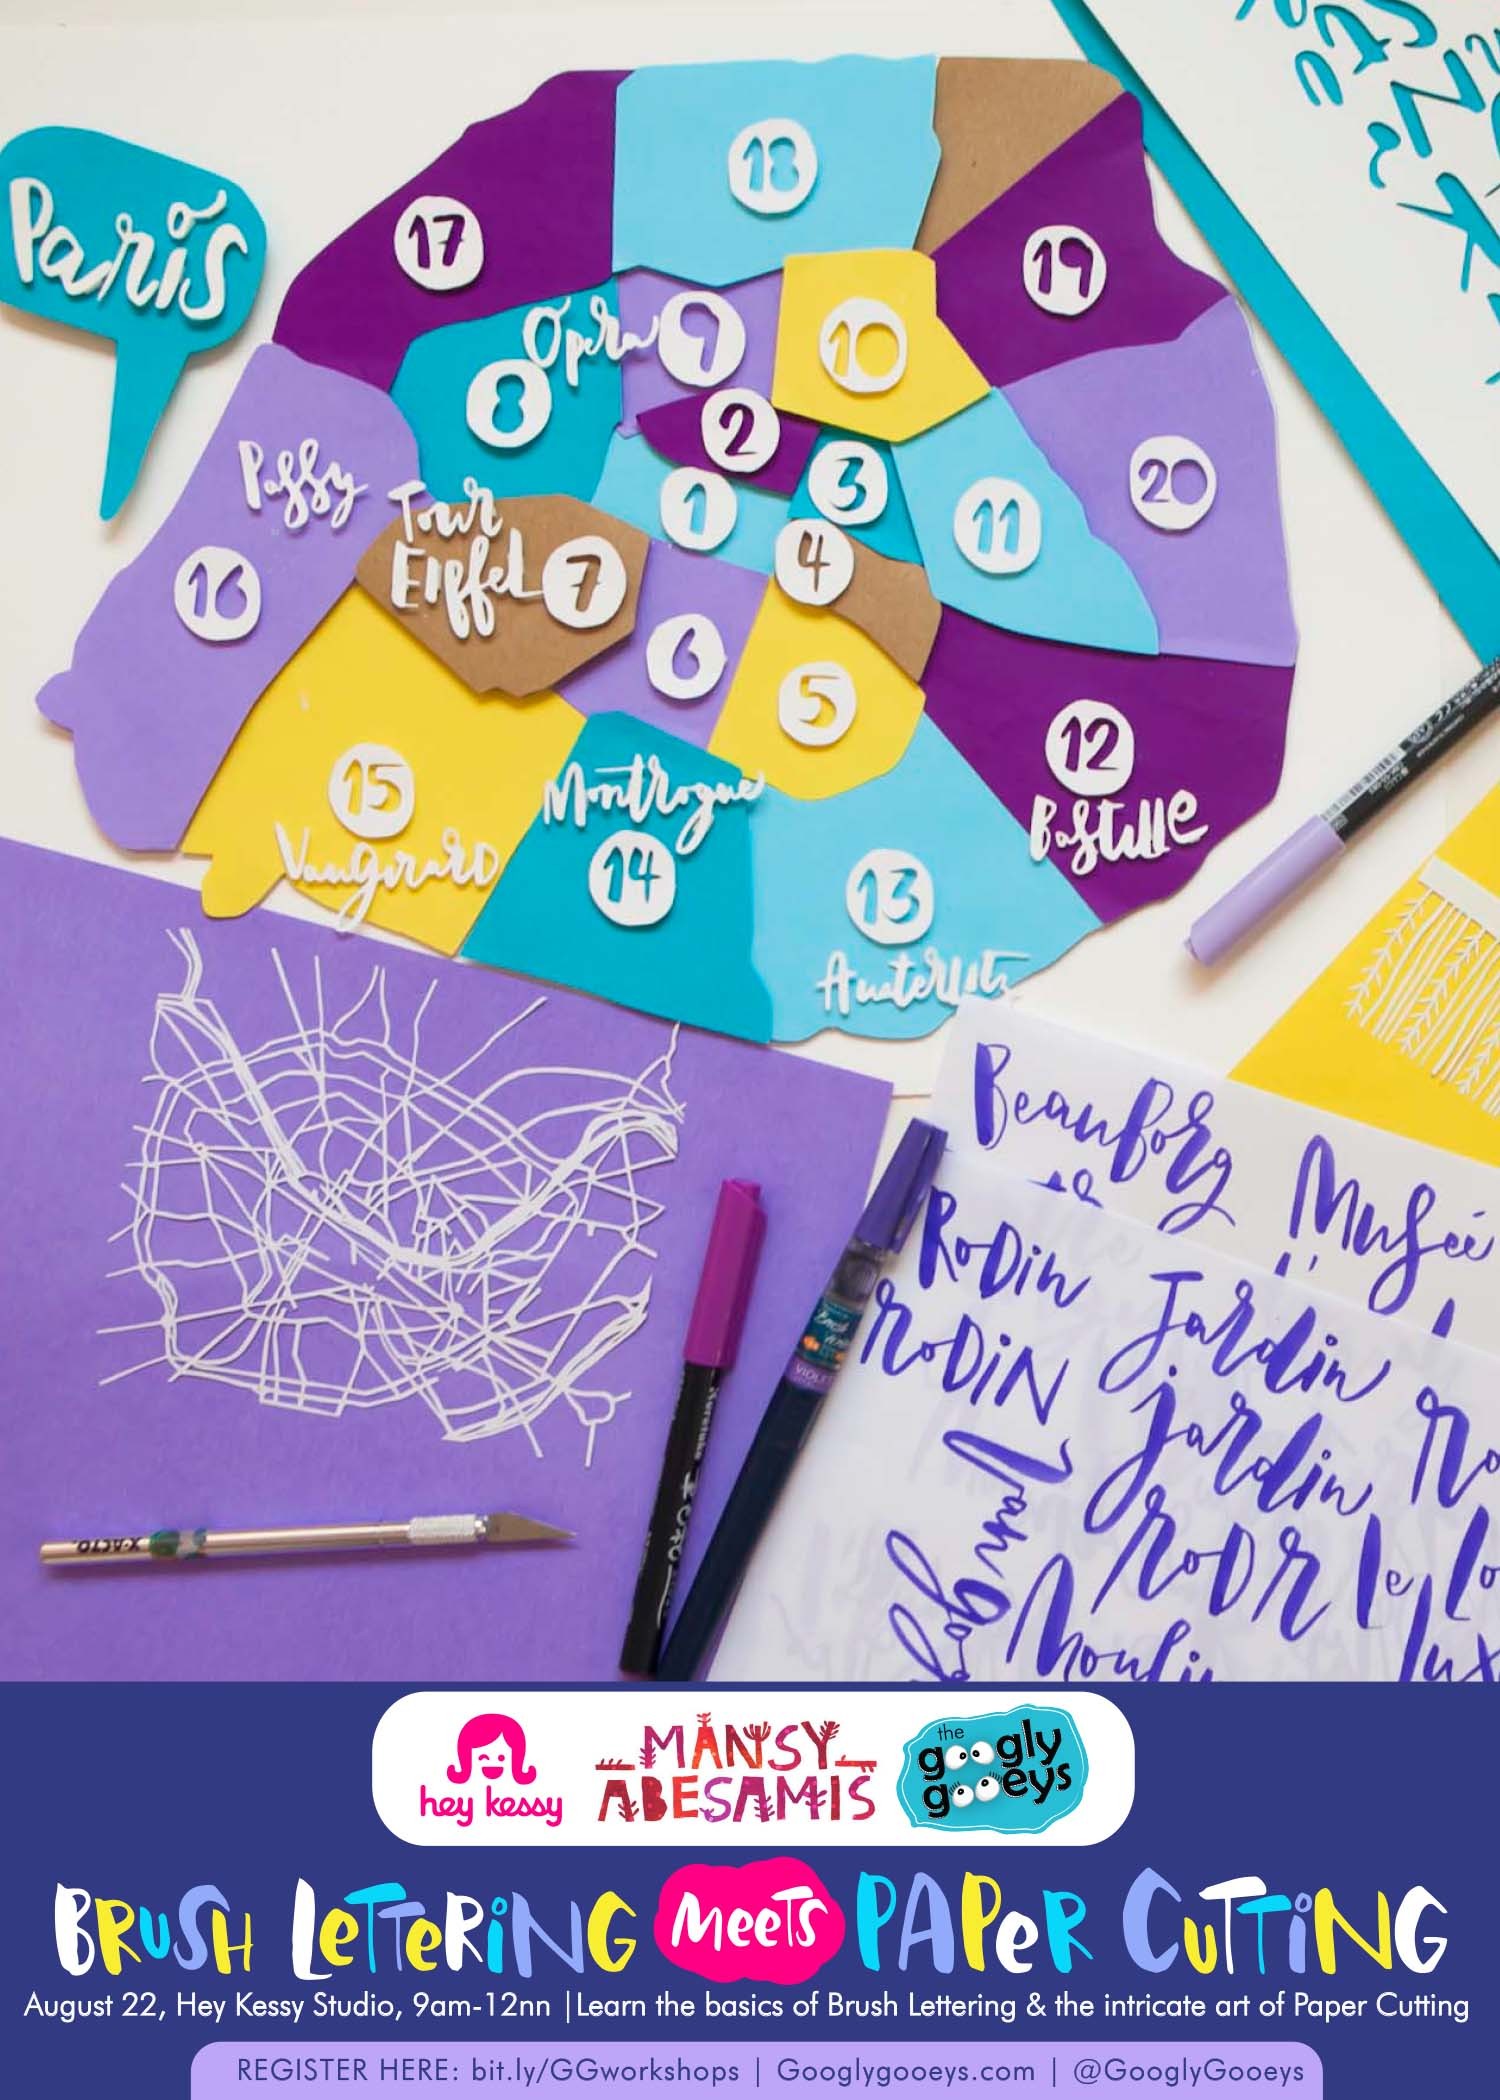 New Workshop: Brush Lettering Meets Paper Cutting